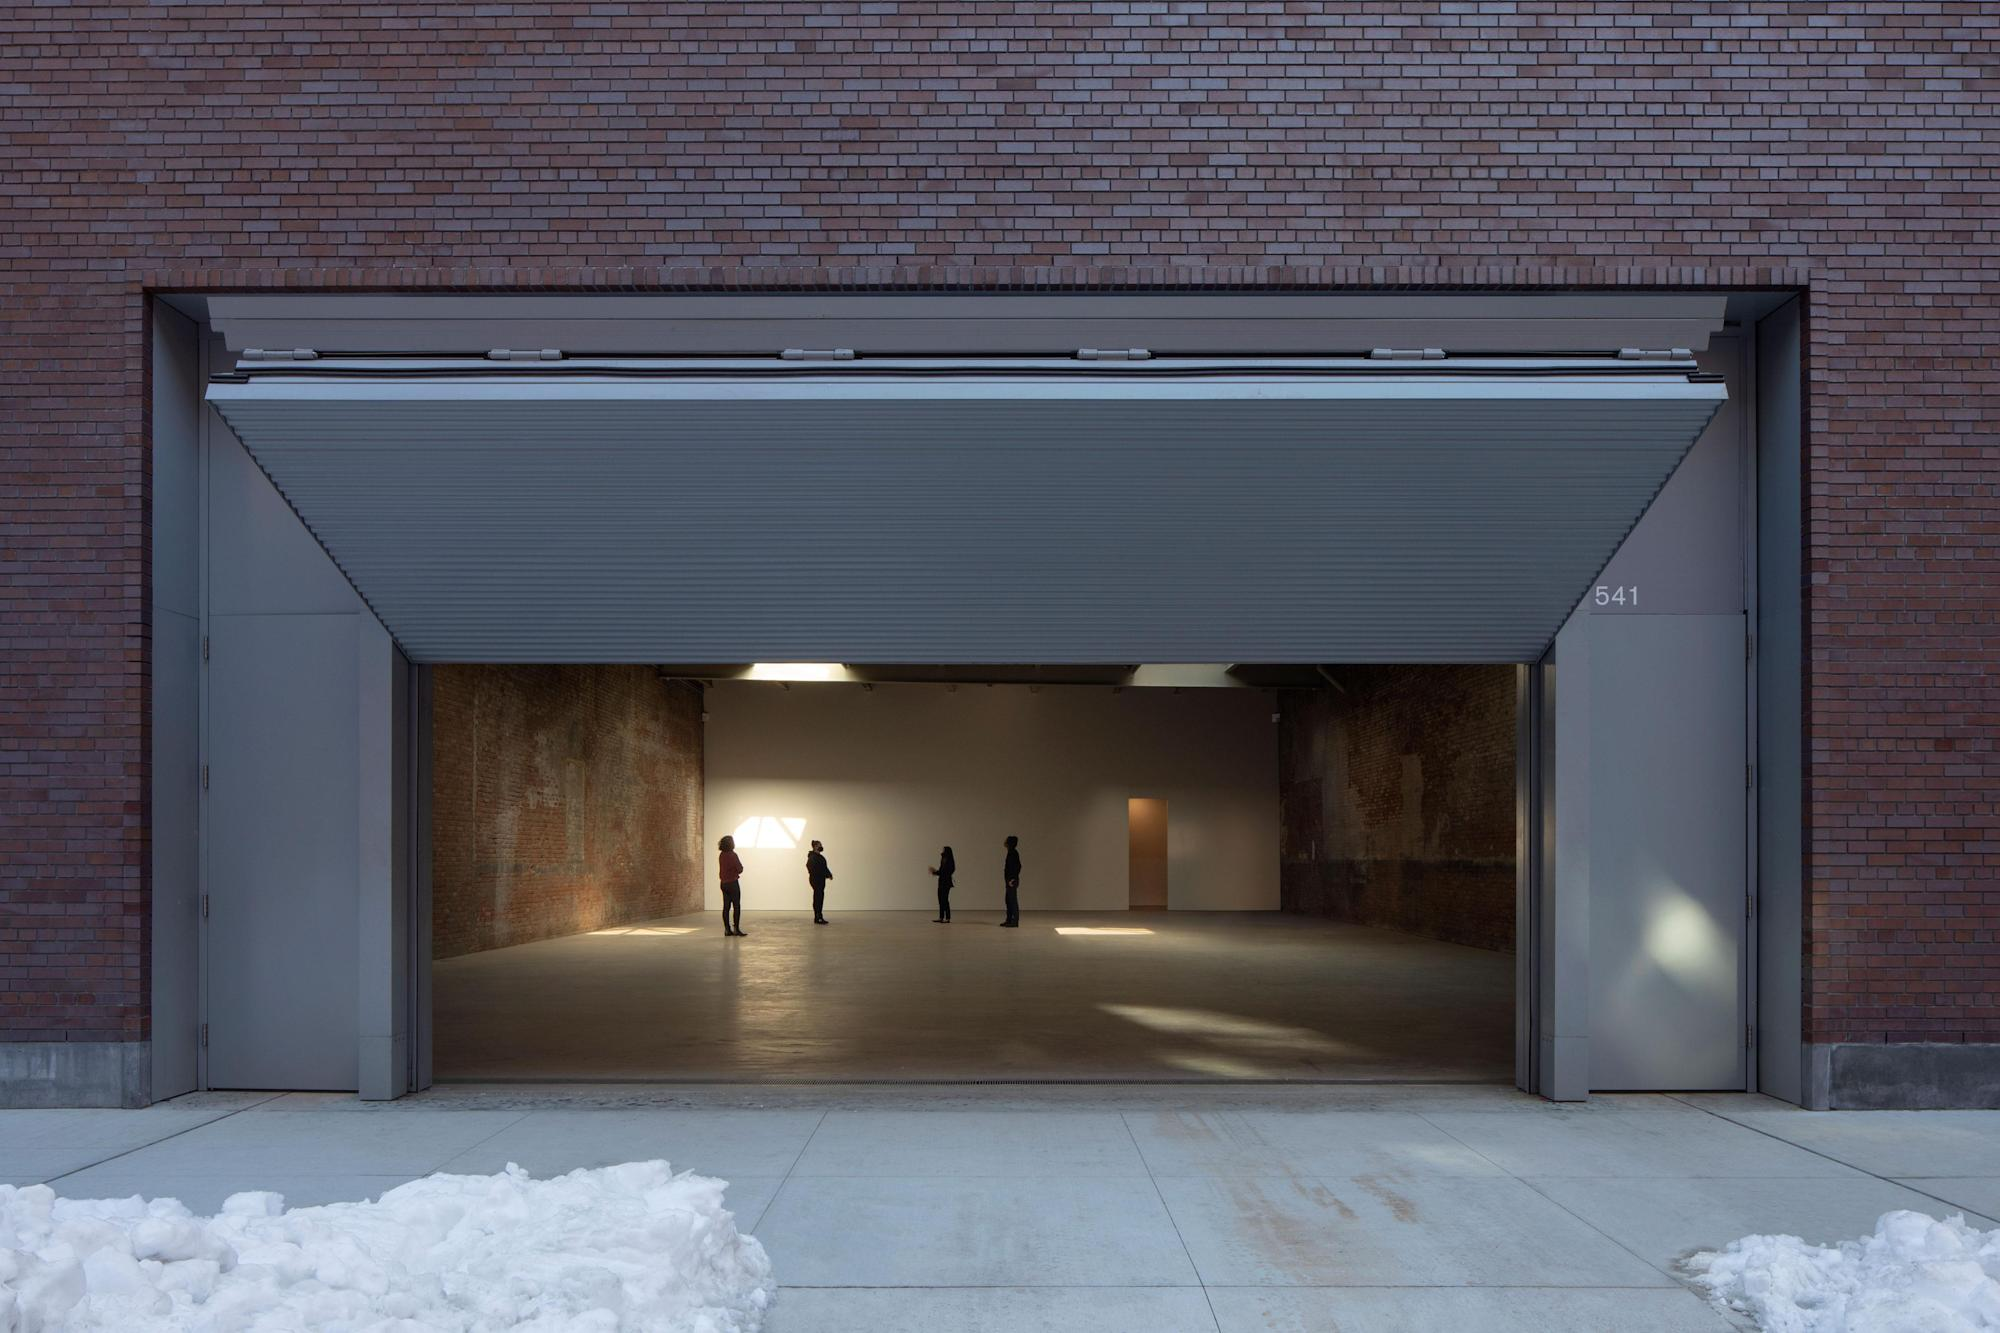 news.yahoo.com: The Dia Art Foundation Expands Its Grounds in NYC